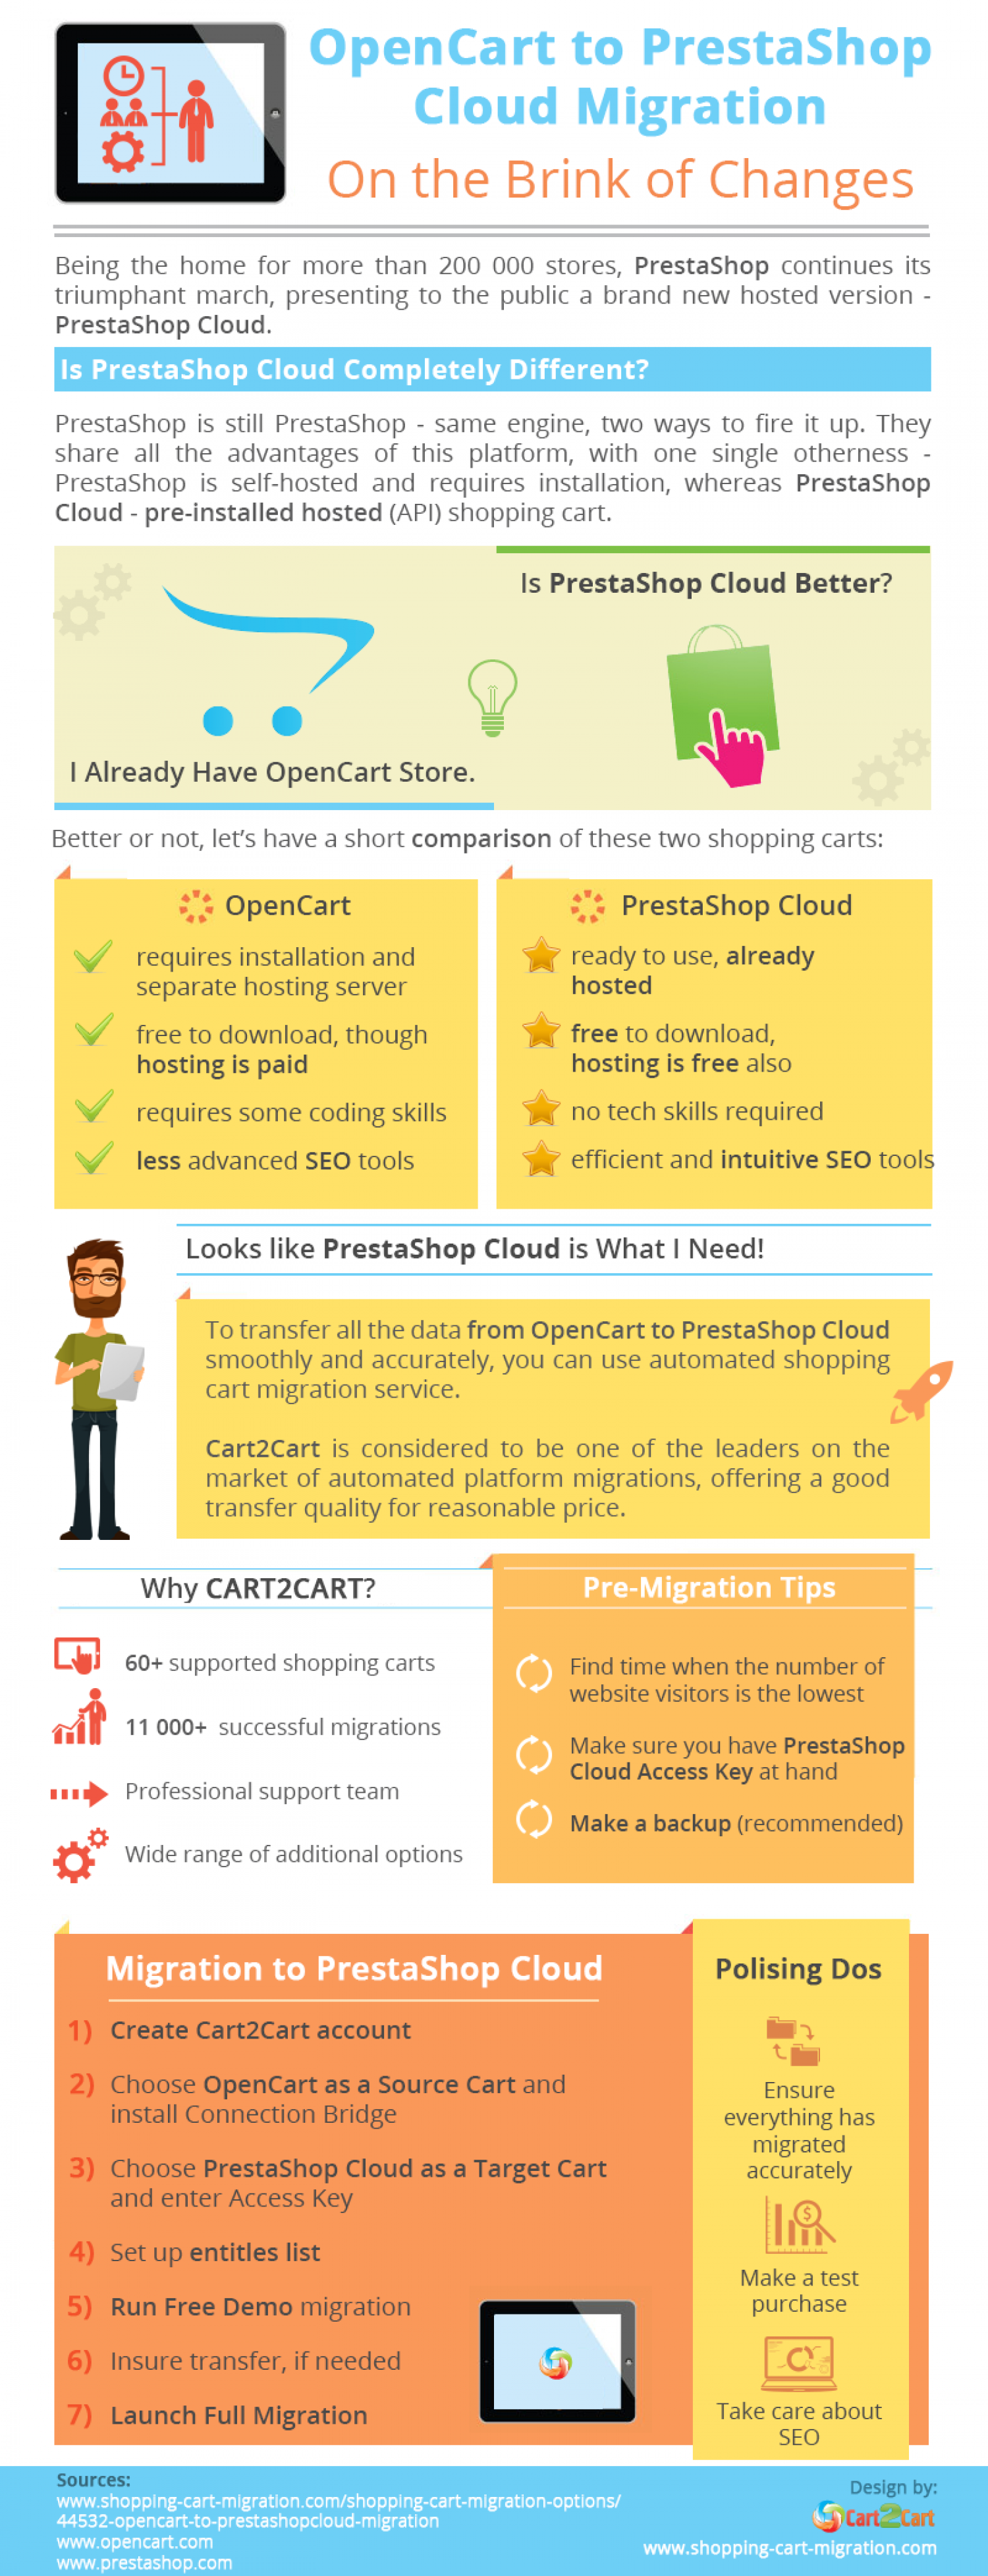 OpenCart to PrestaShop Cloud Migration  On the Brink of Changes Infographic